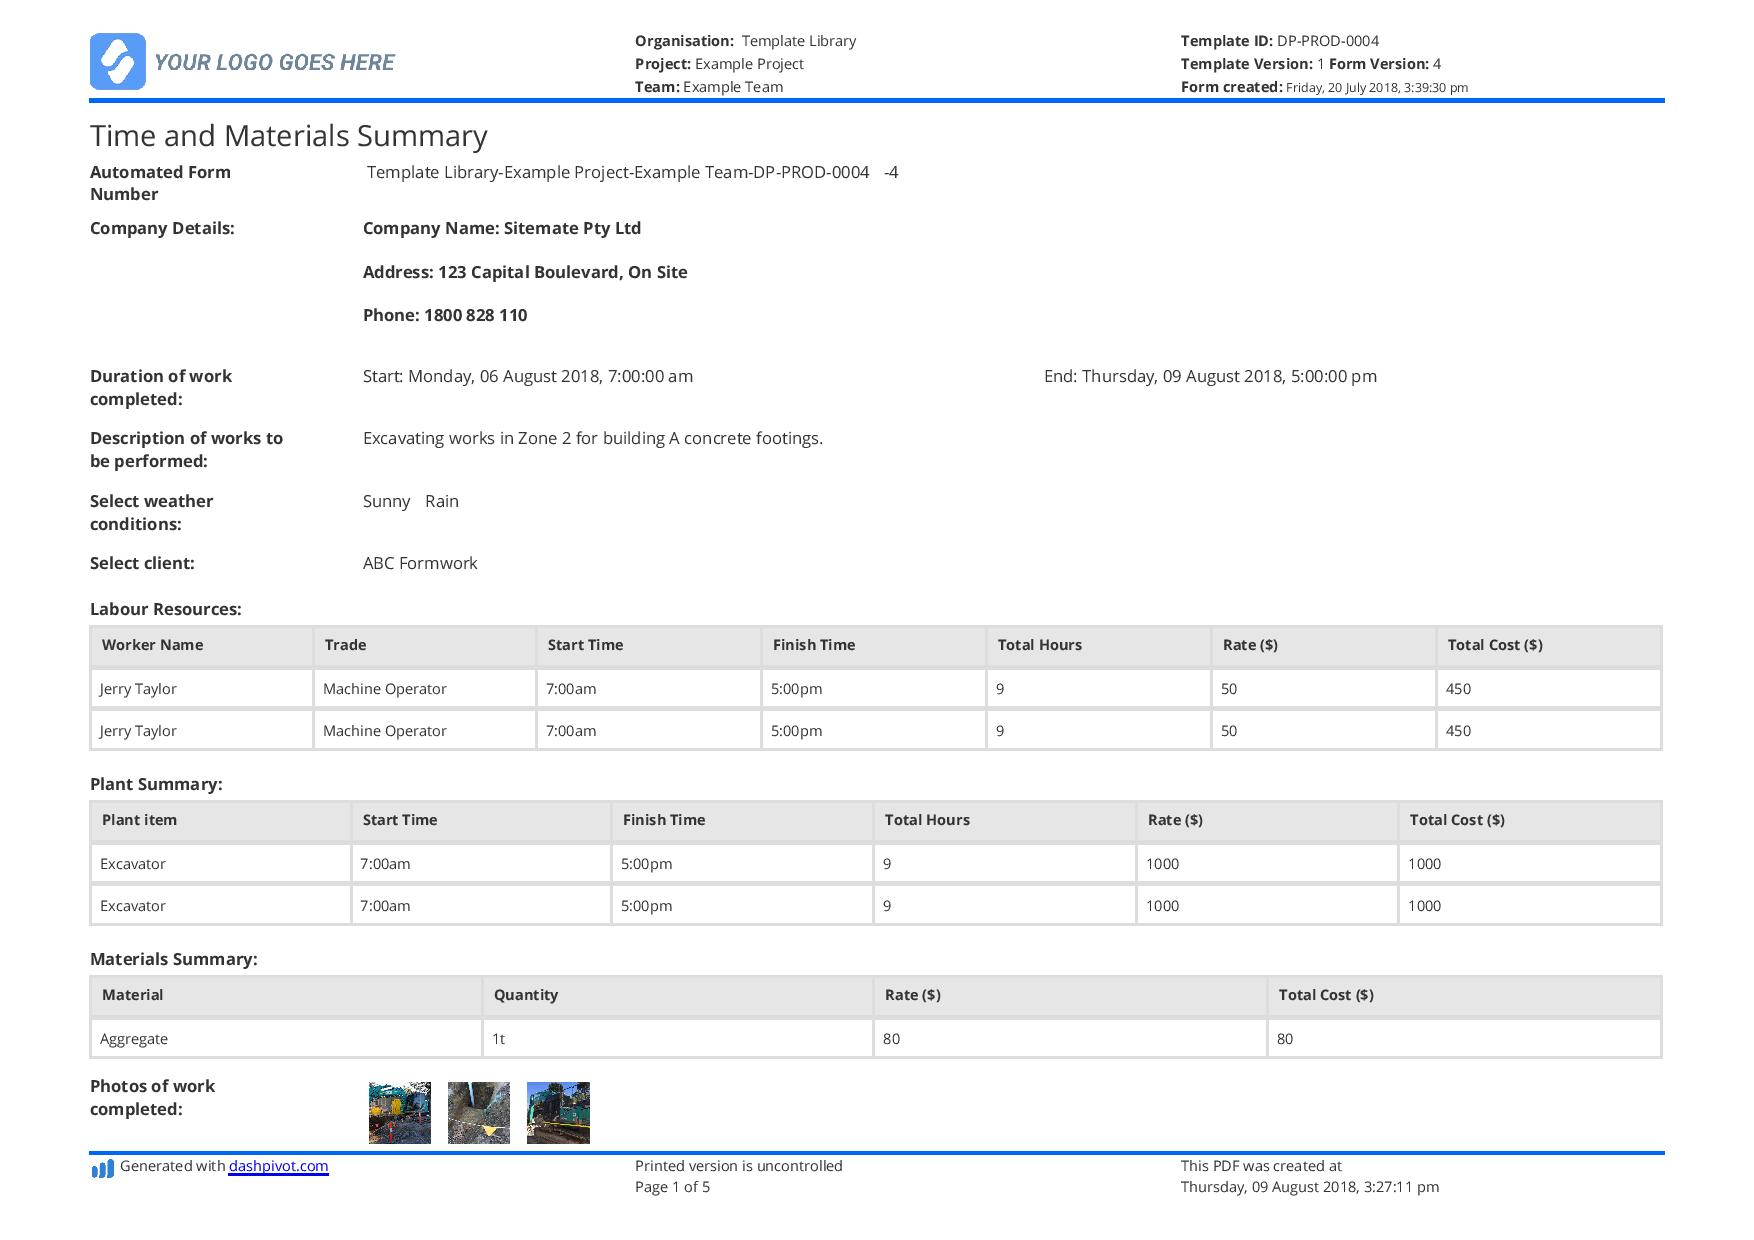 Sample Of Time And Material Template Excel With Time And Material Template Excel Free Download